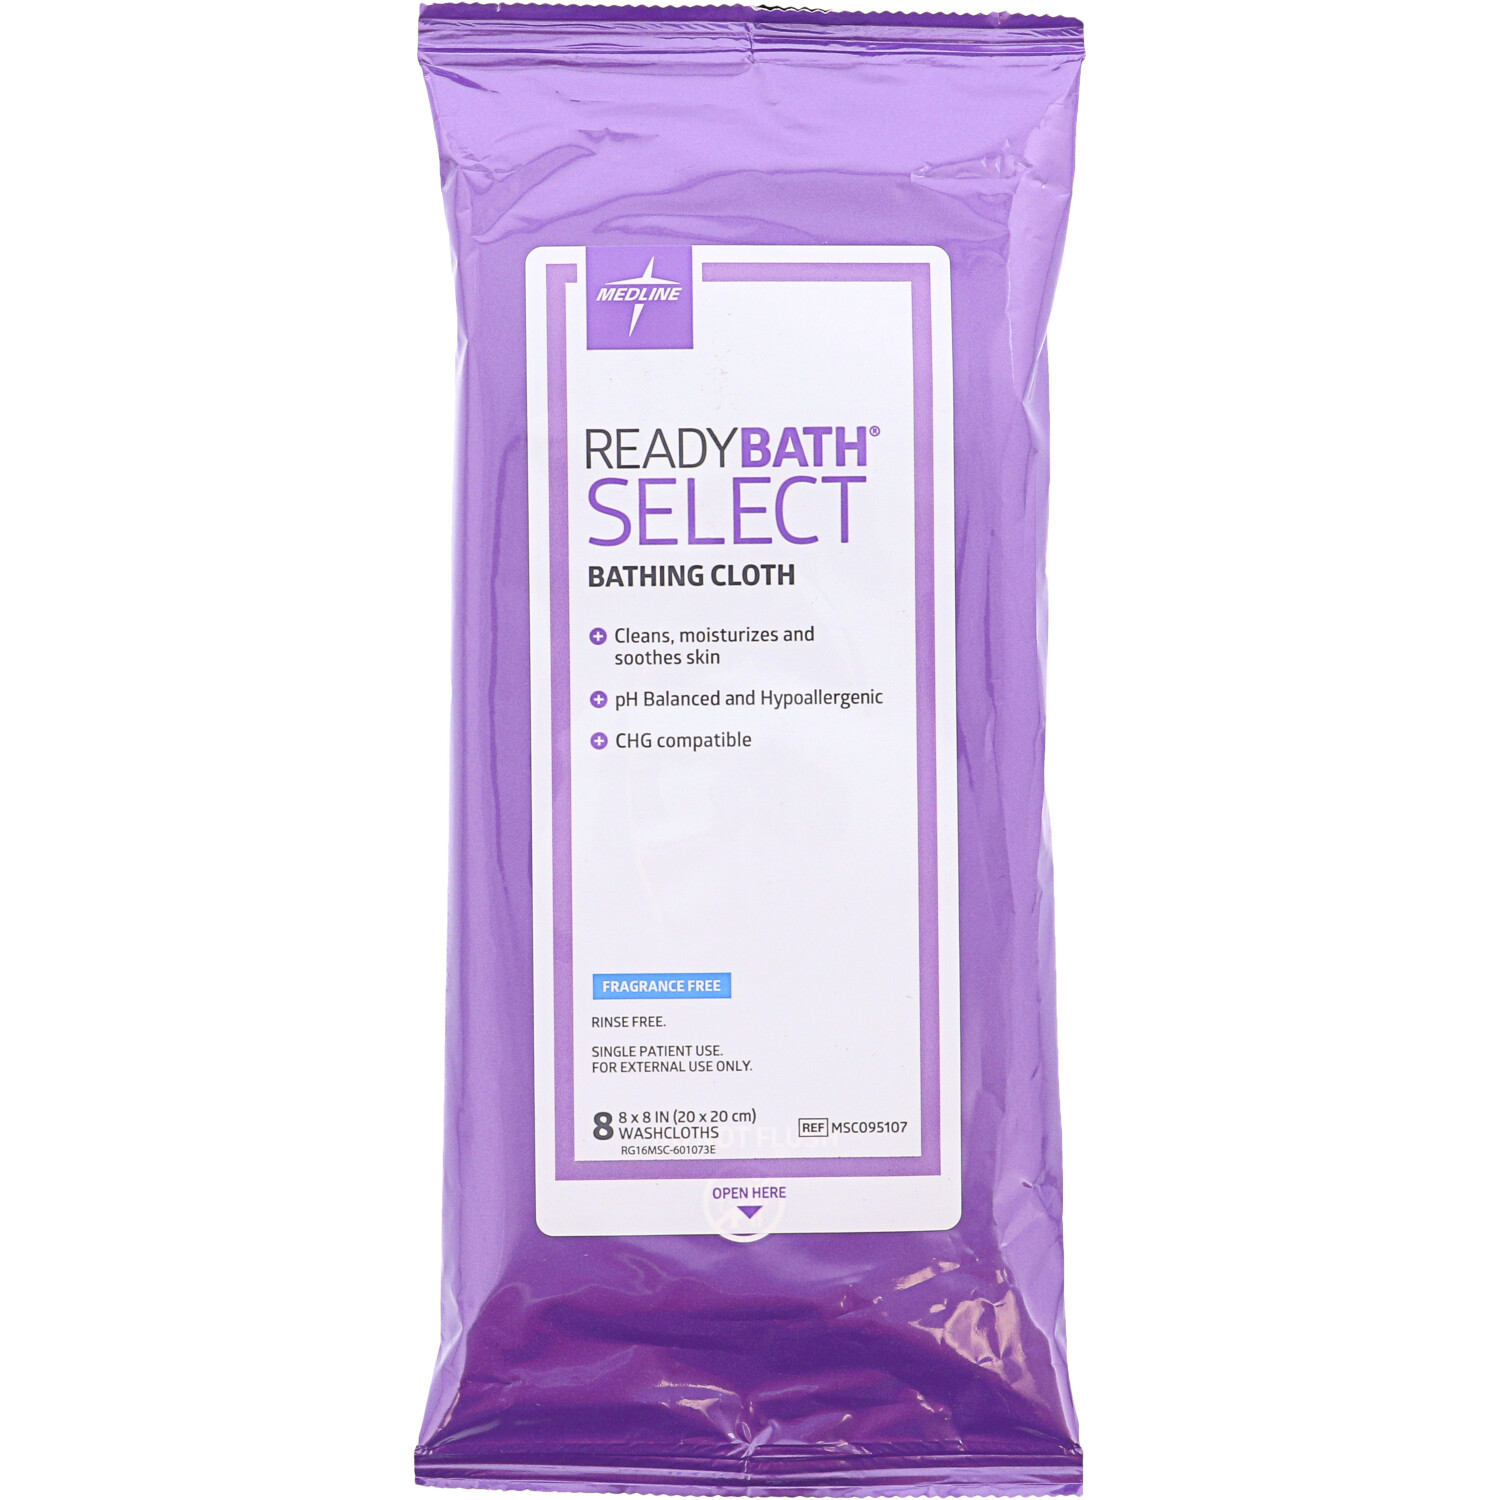 Medline ReadyBath Select Body Cleansing Wipes, Fragrance Free, 240 Wipes - 240